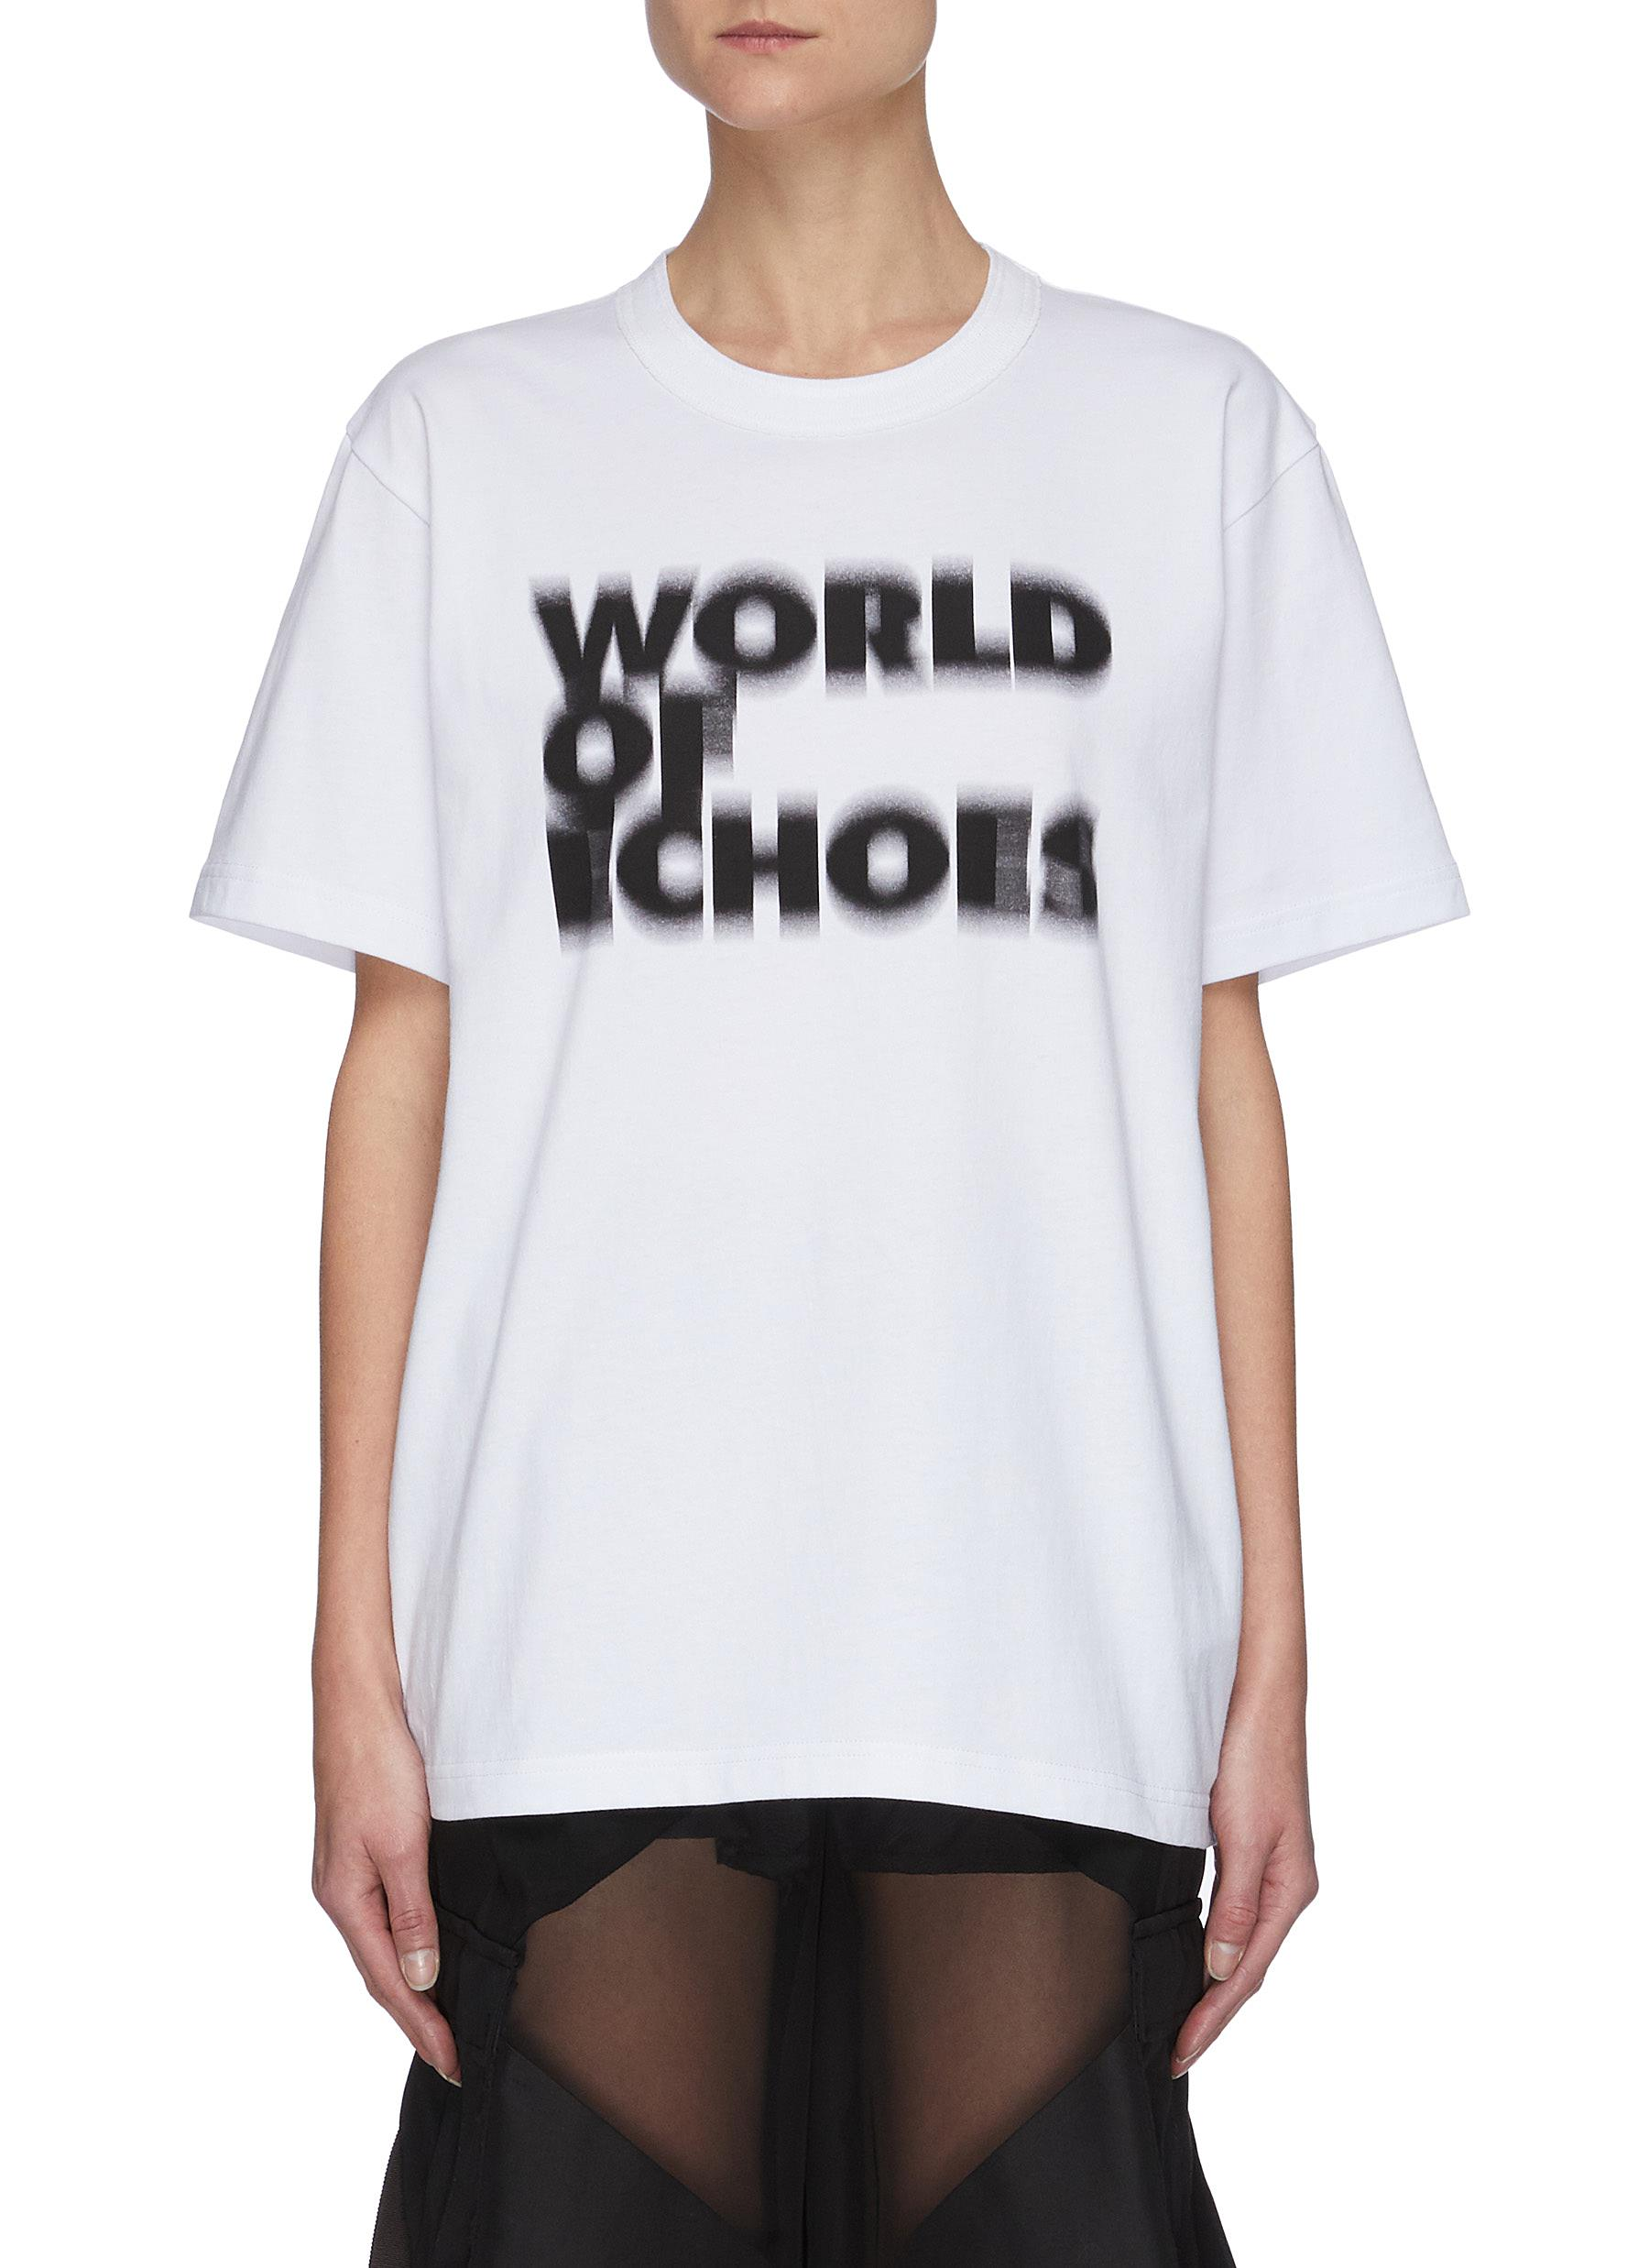 Sacai X FRANÇOIS K. WORLD OF ECHOES SLOGAN LOGO PRINT T-SHIRT